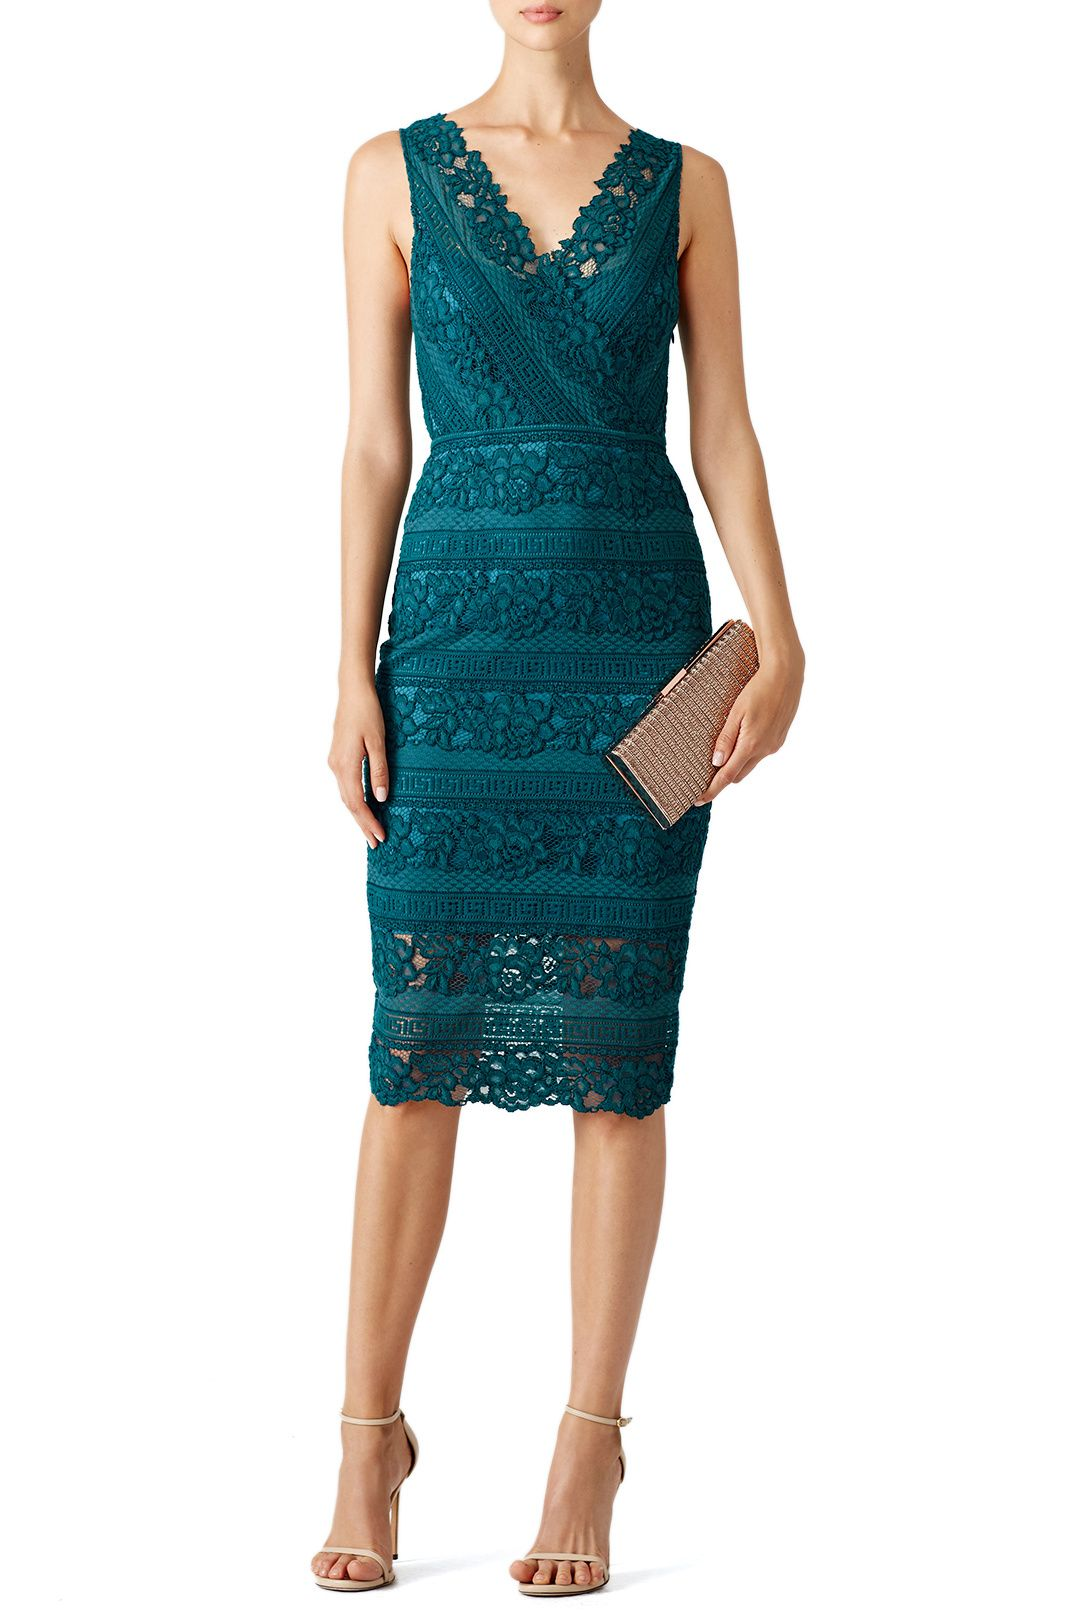 Lace dress rose  Rent Teal Rose Bush Lace Sheath by Saylor for    only at Rent